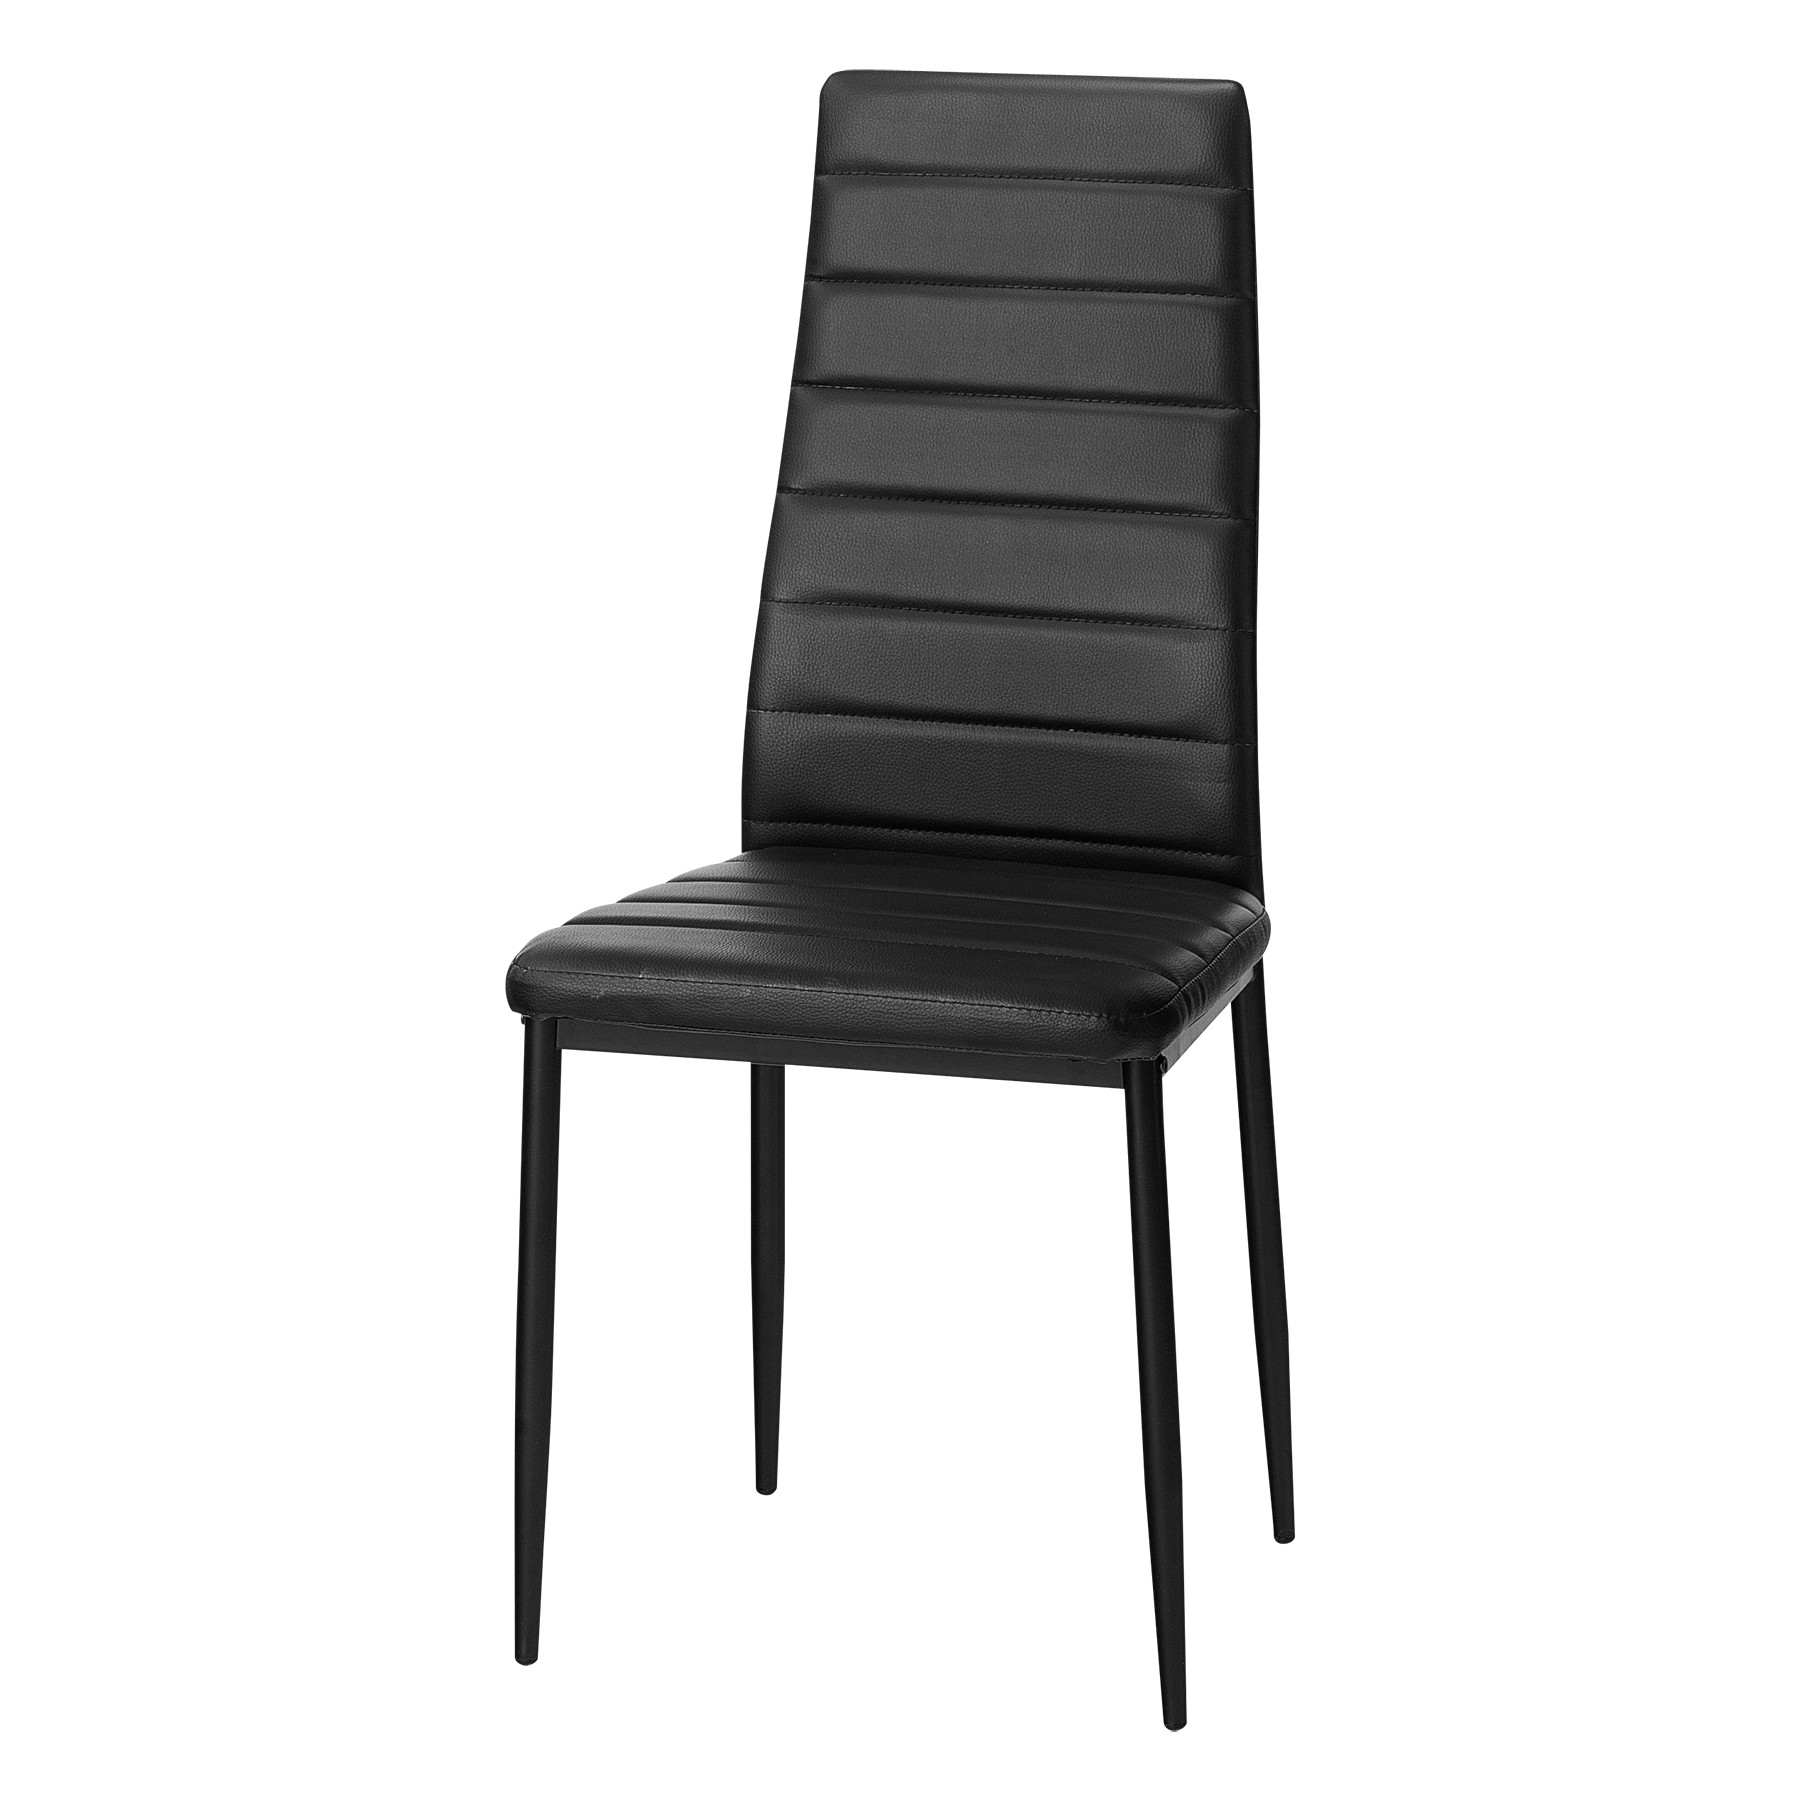 Jysk Canada Intended For Newest Dining Chairs (Gallery 25 of 25)